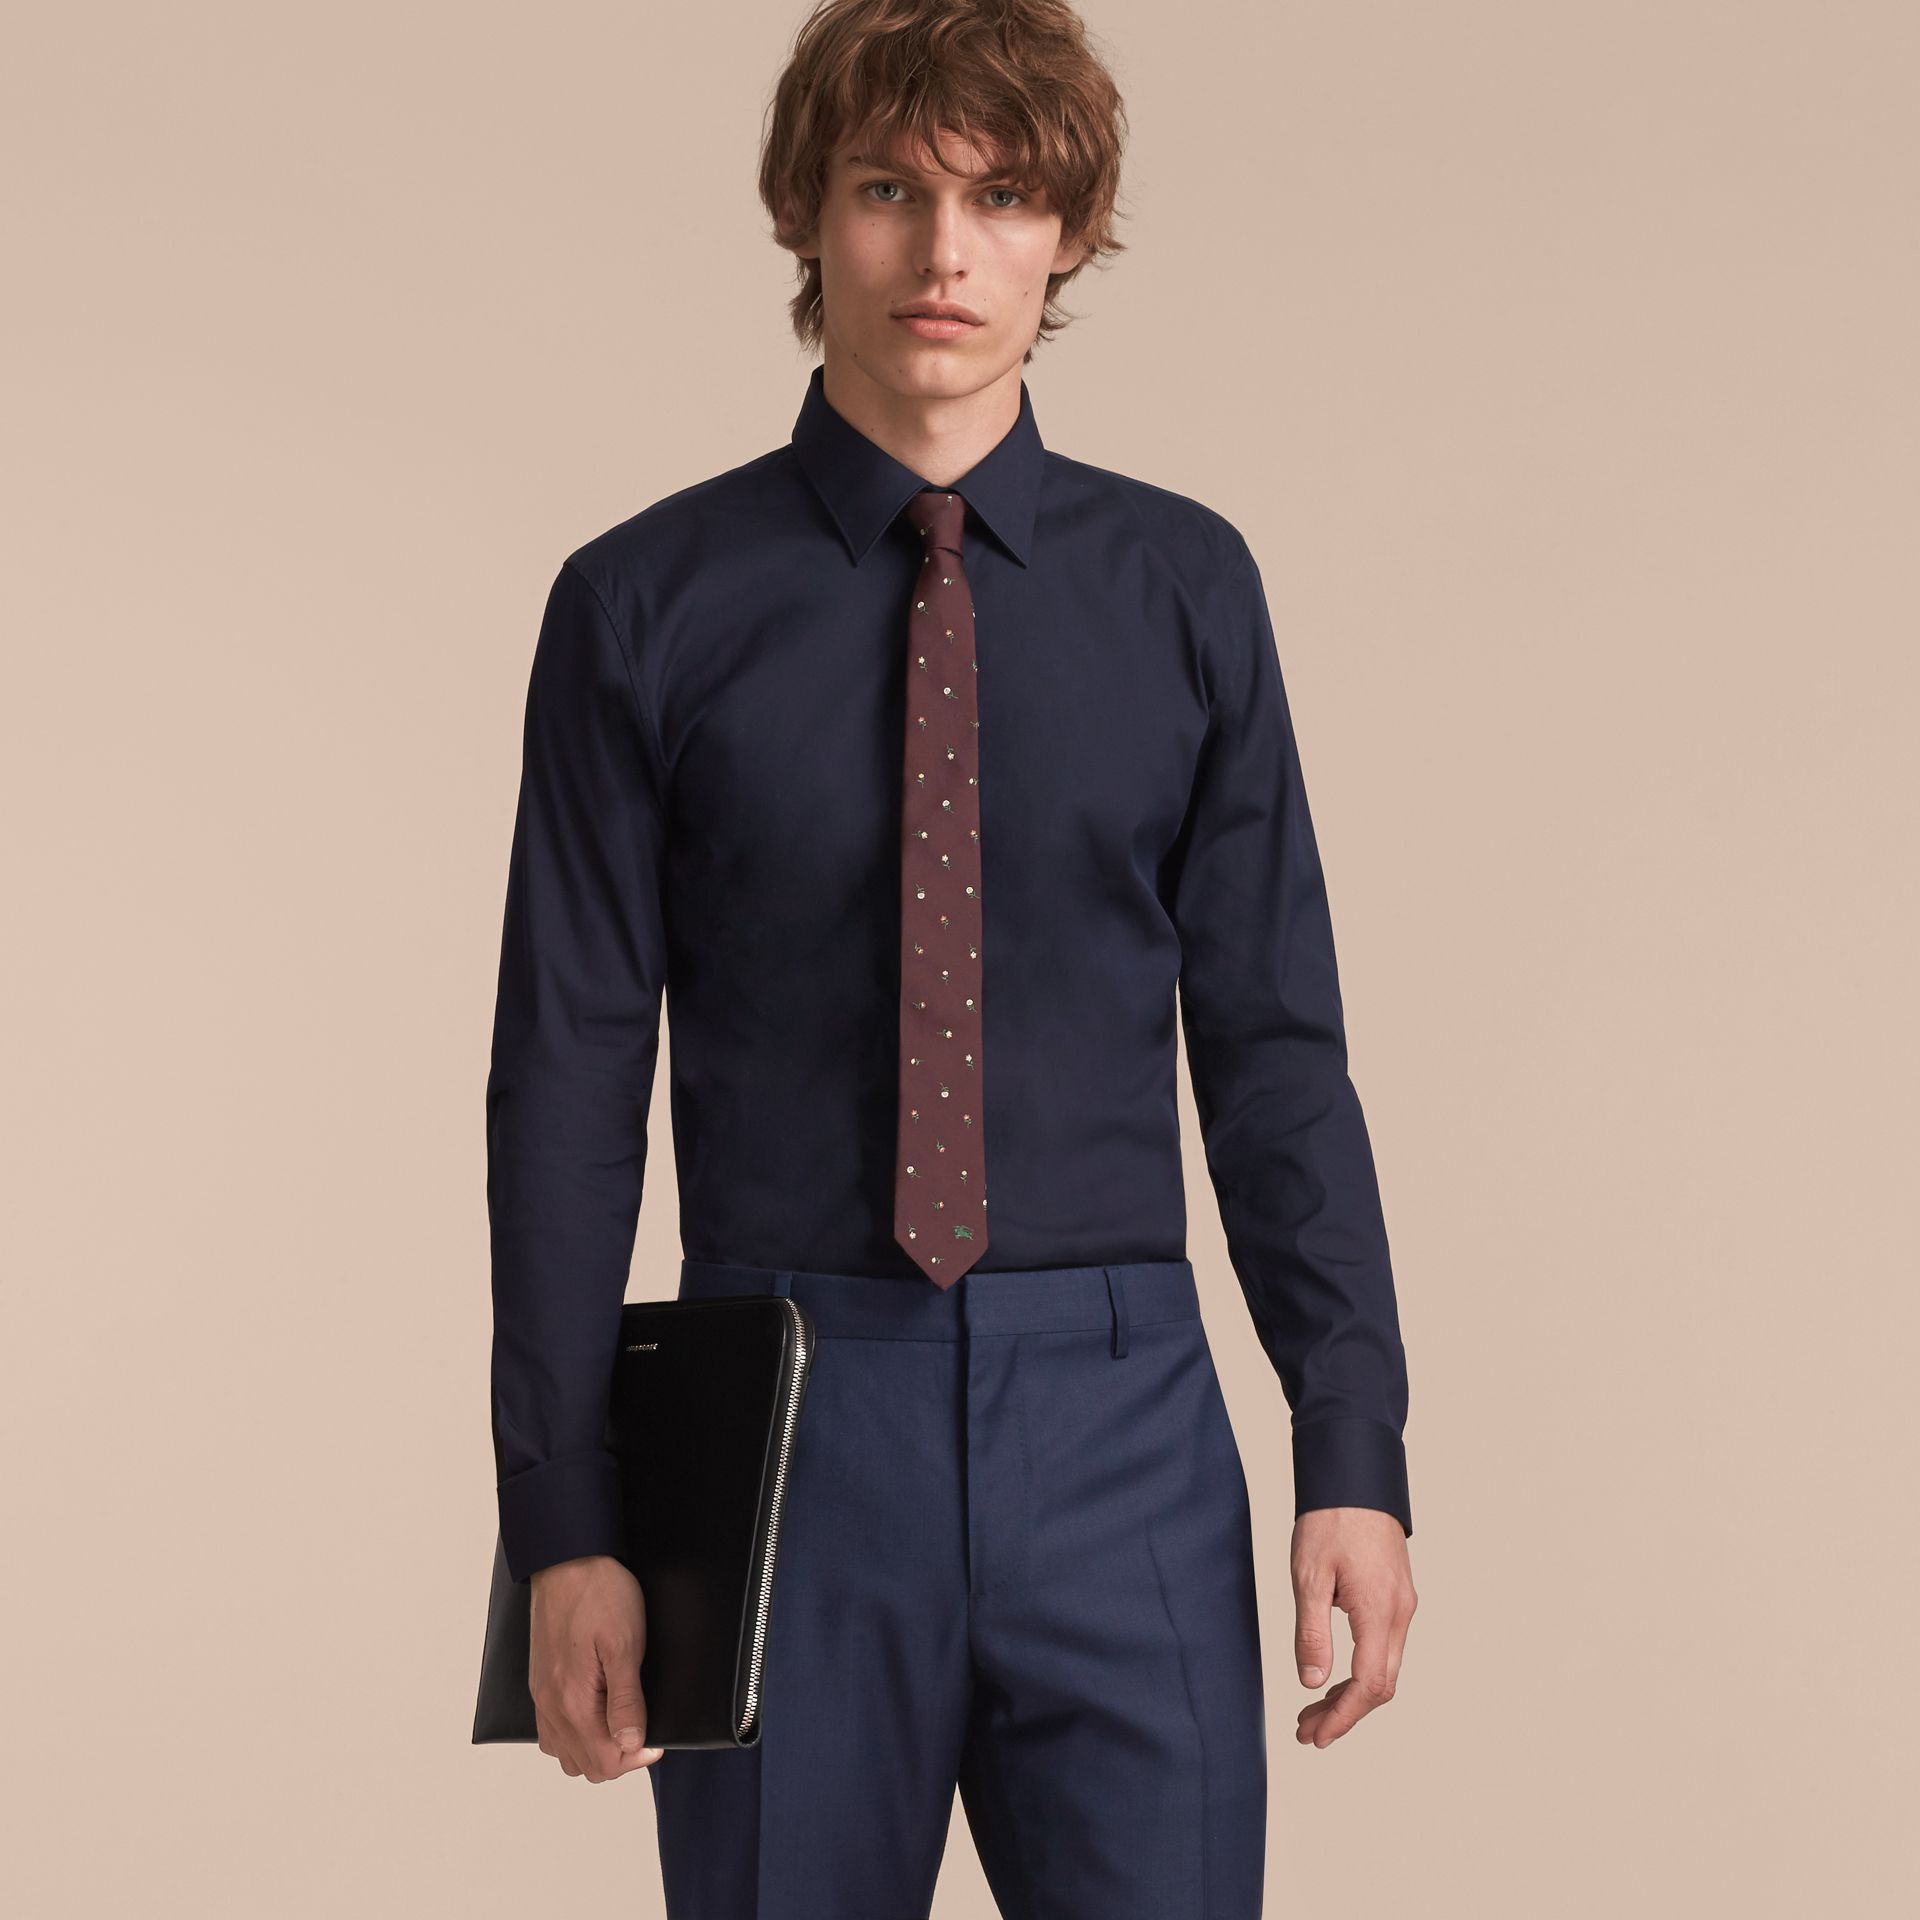 Slim Cut Floral Silk Jacquard Tie in Dark Cinnamon - Men | Burberry - gallery image 3